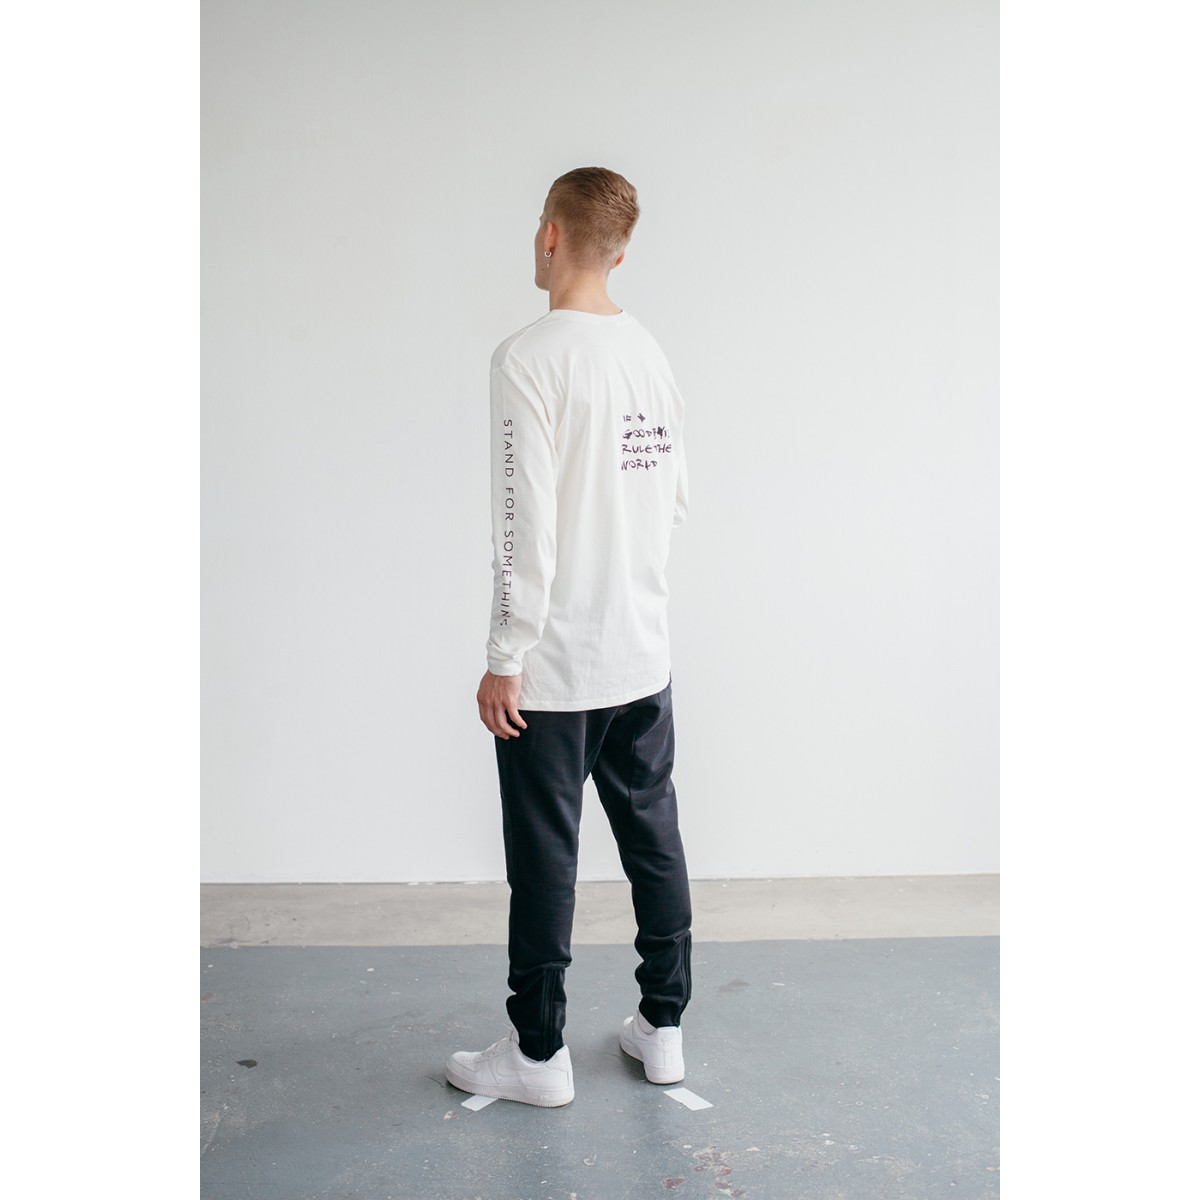 Goodbois Dollars Longsleeve off-White